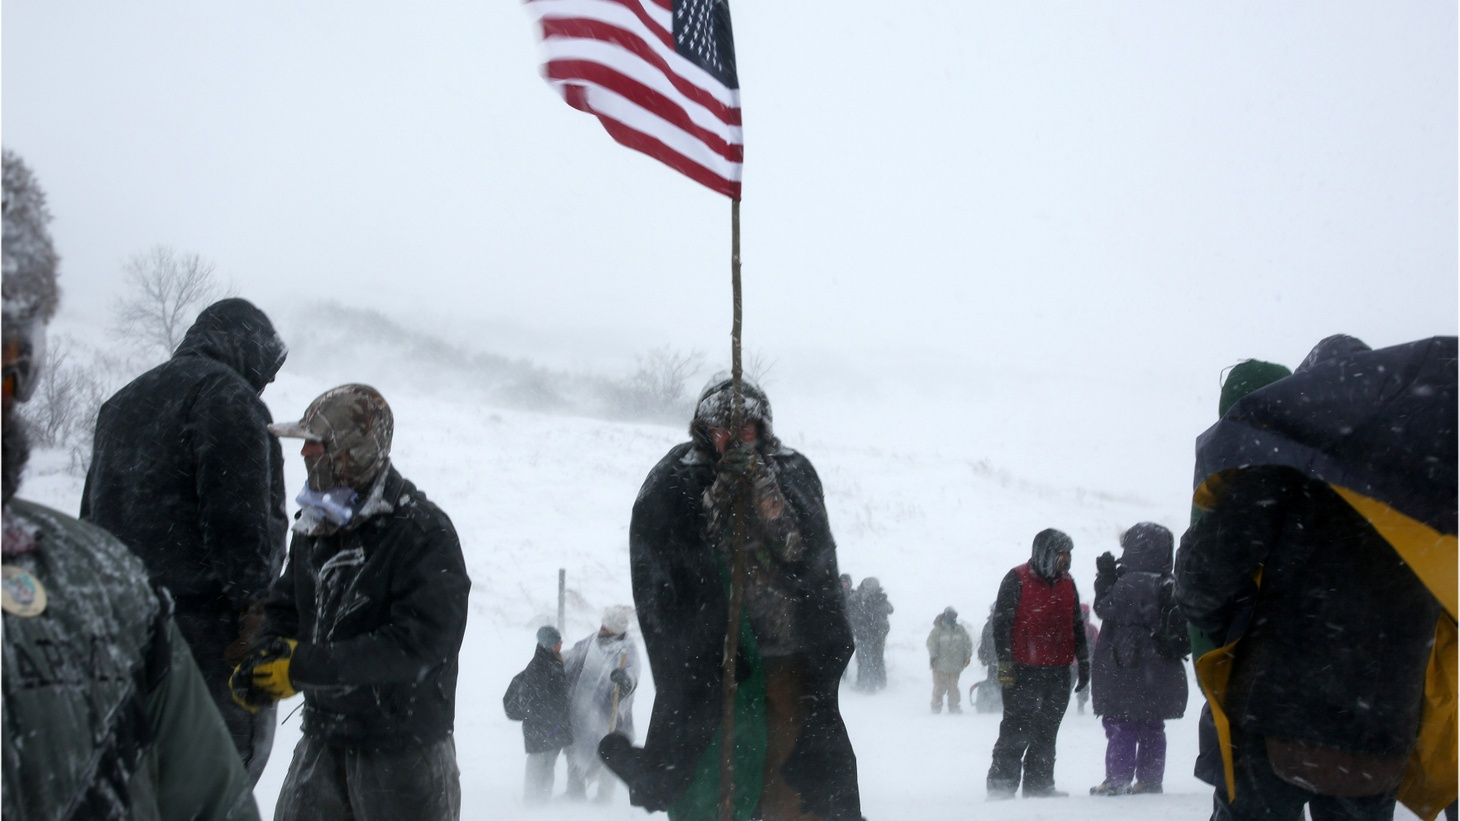 The Trump administration has allowed construction to resume on the Dakota Access Pipeline, so the opposition has asked a court to intervene. A watchdog group has issued California Governor Jerry Brown critical grades on the environment.